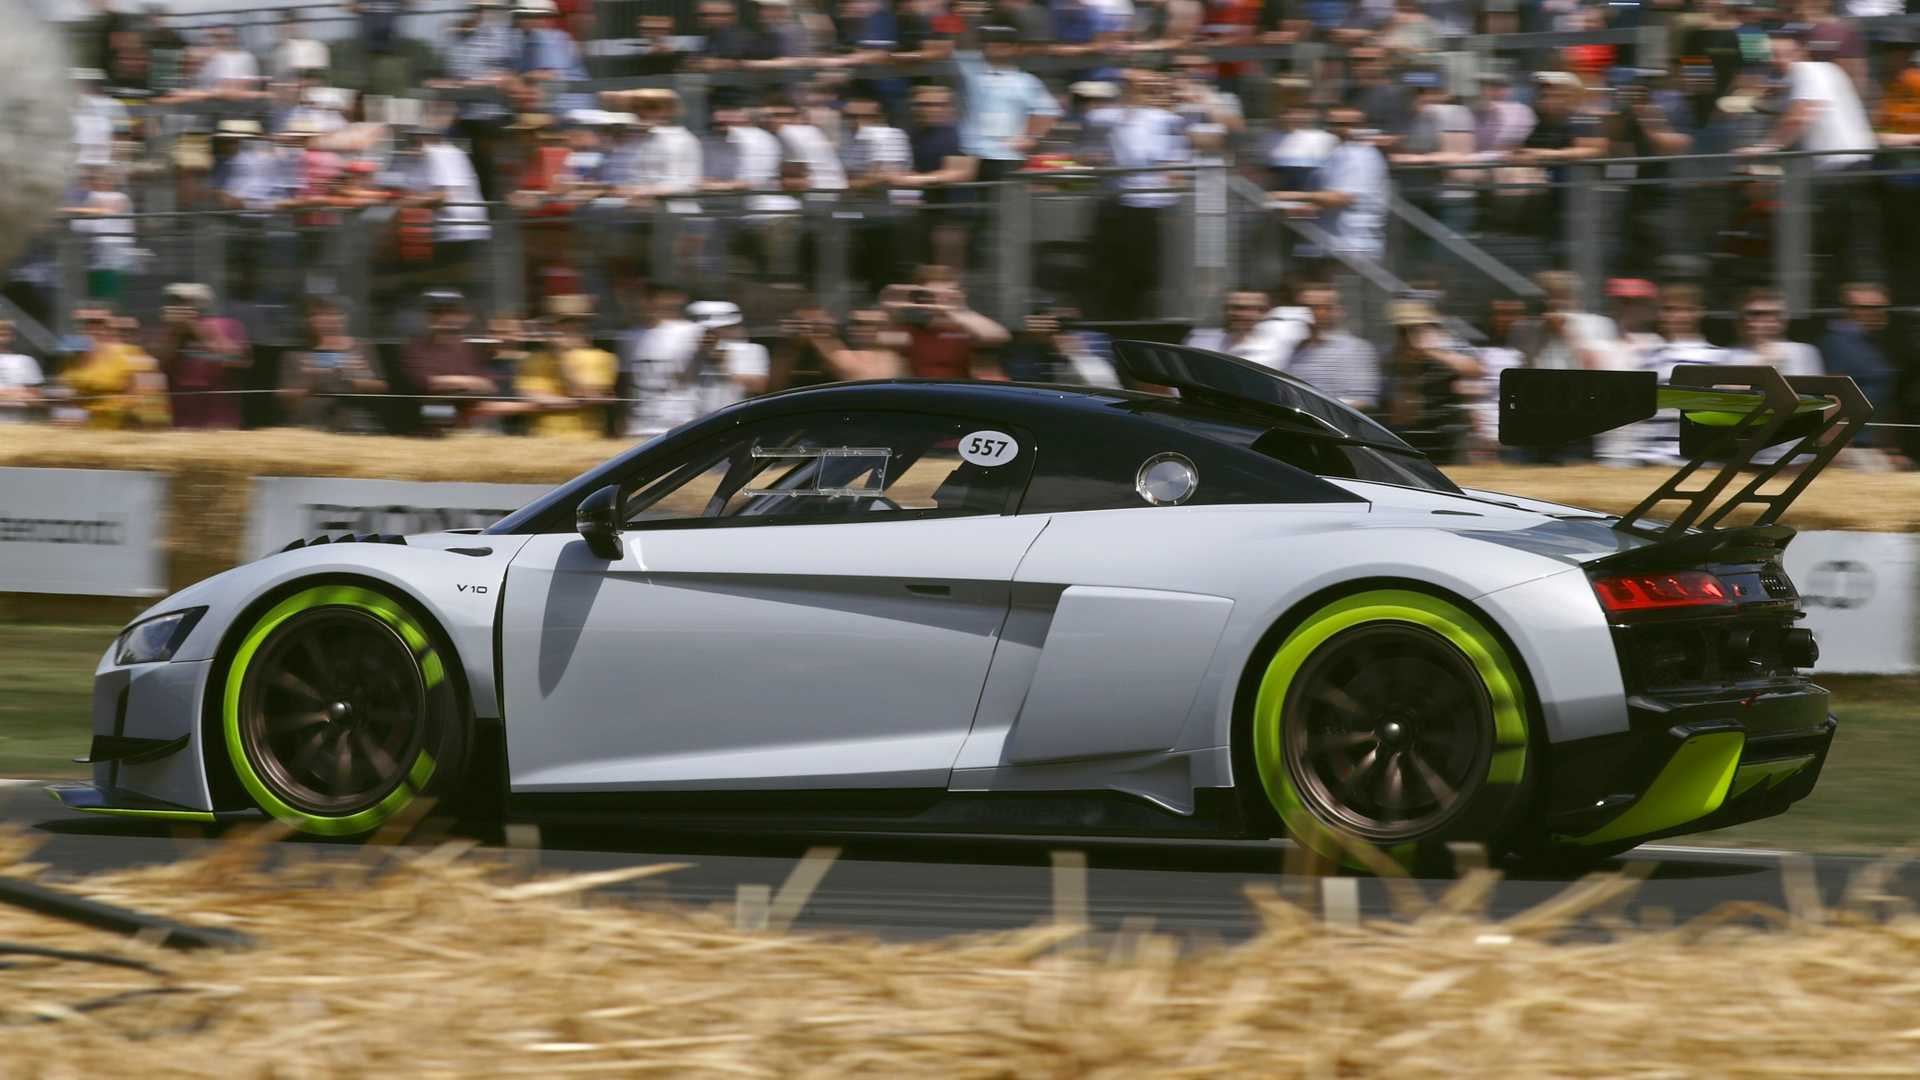 2020 Audi R8 LMS GT2 Is A Wild Race Car With 630 HP [UPDATE] 1920x1080